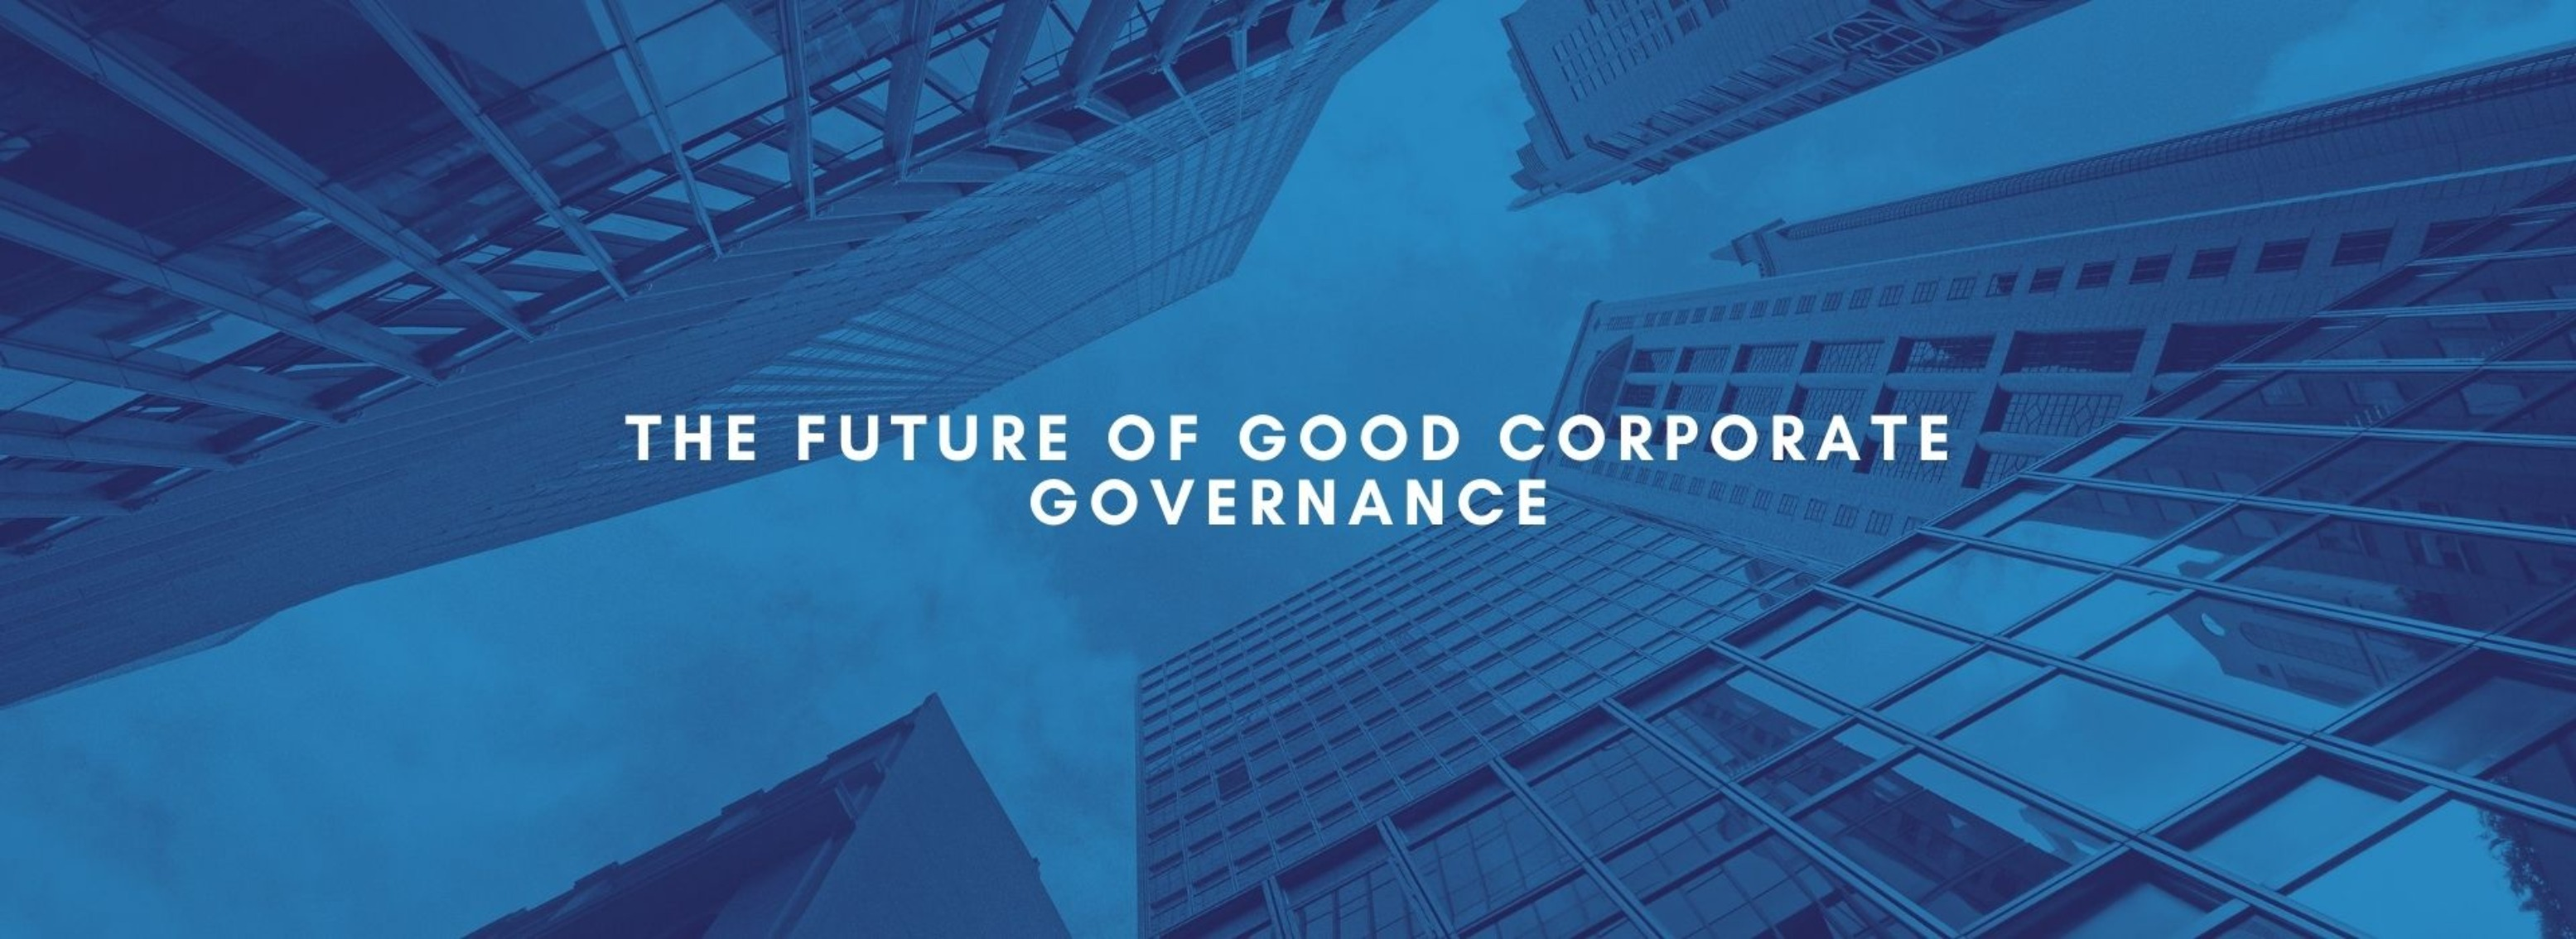 BM | The Future of Good Corporate Governance | July 14th, 2021